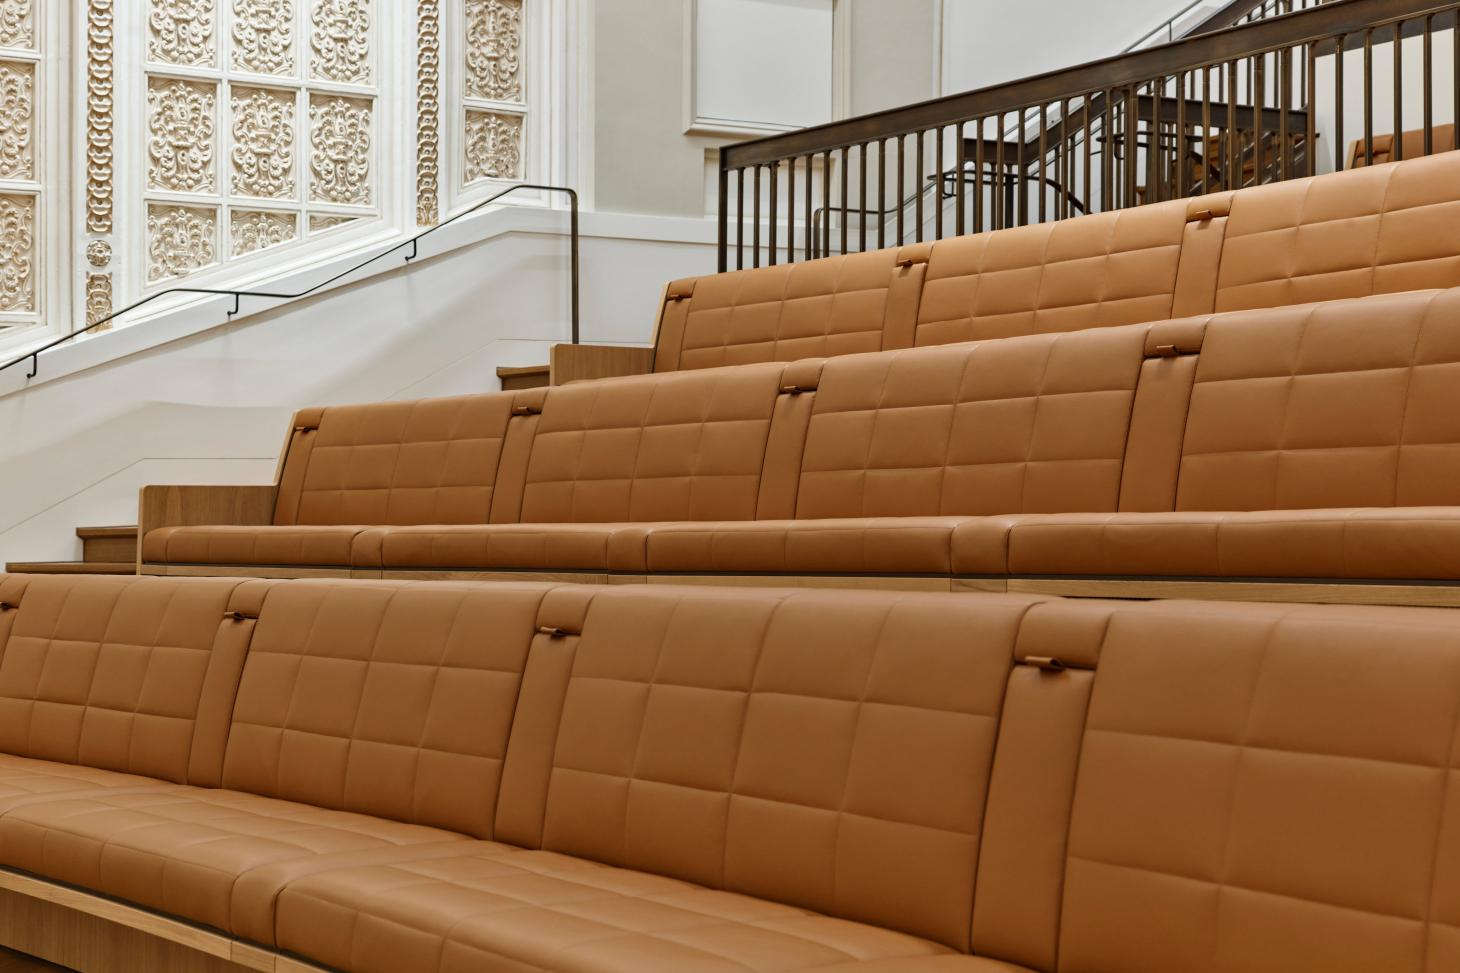 Italian leather seating at Apple Tower Theater in LA